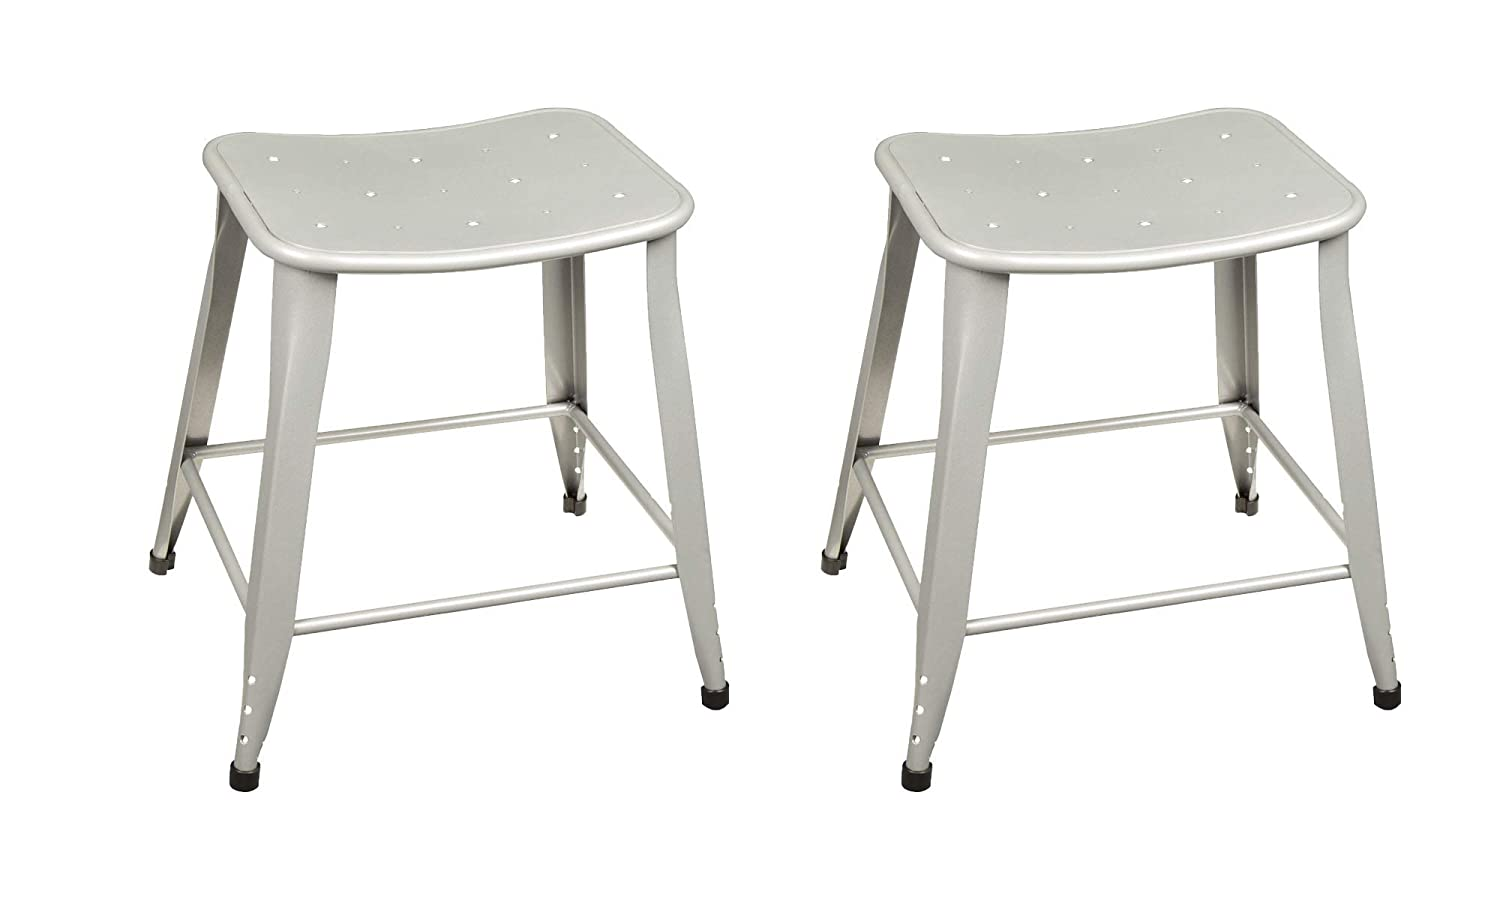 Miraculous Norwood Commercial Furniture Contoured Metal Stool 18 Seat Height Silver Nor Bt3604 18 So Pack Of 2 Onthecornerstone Fun Painted Chair Ideas Images Onthecornerstoneorg